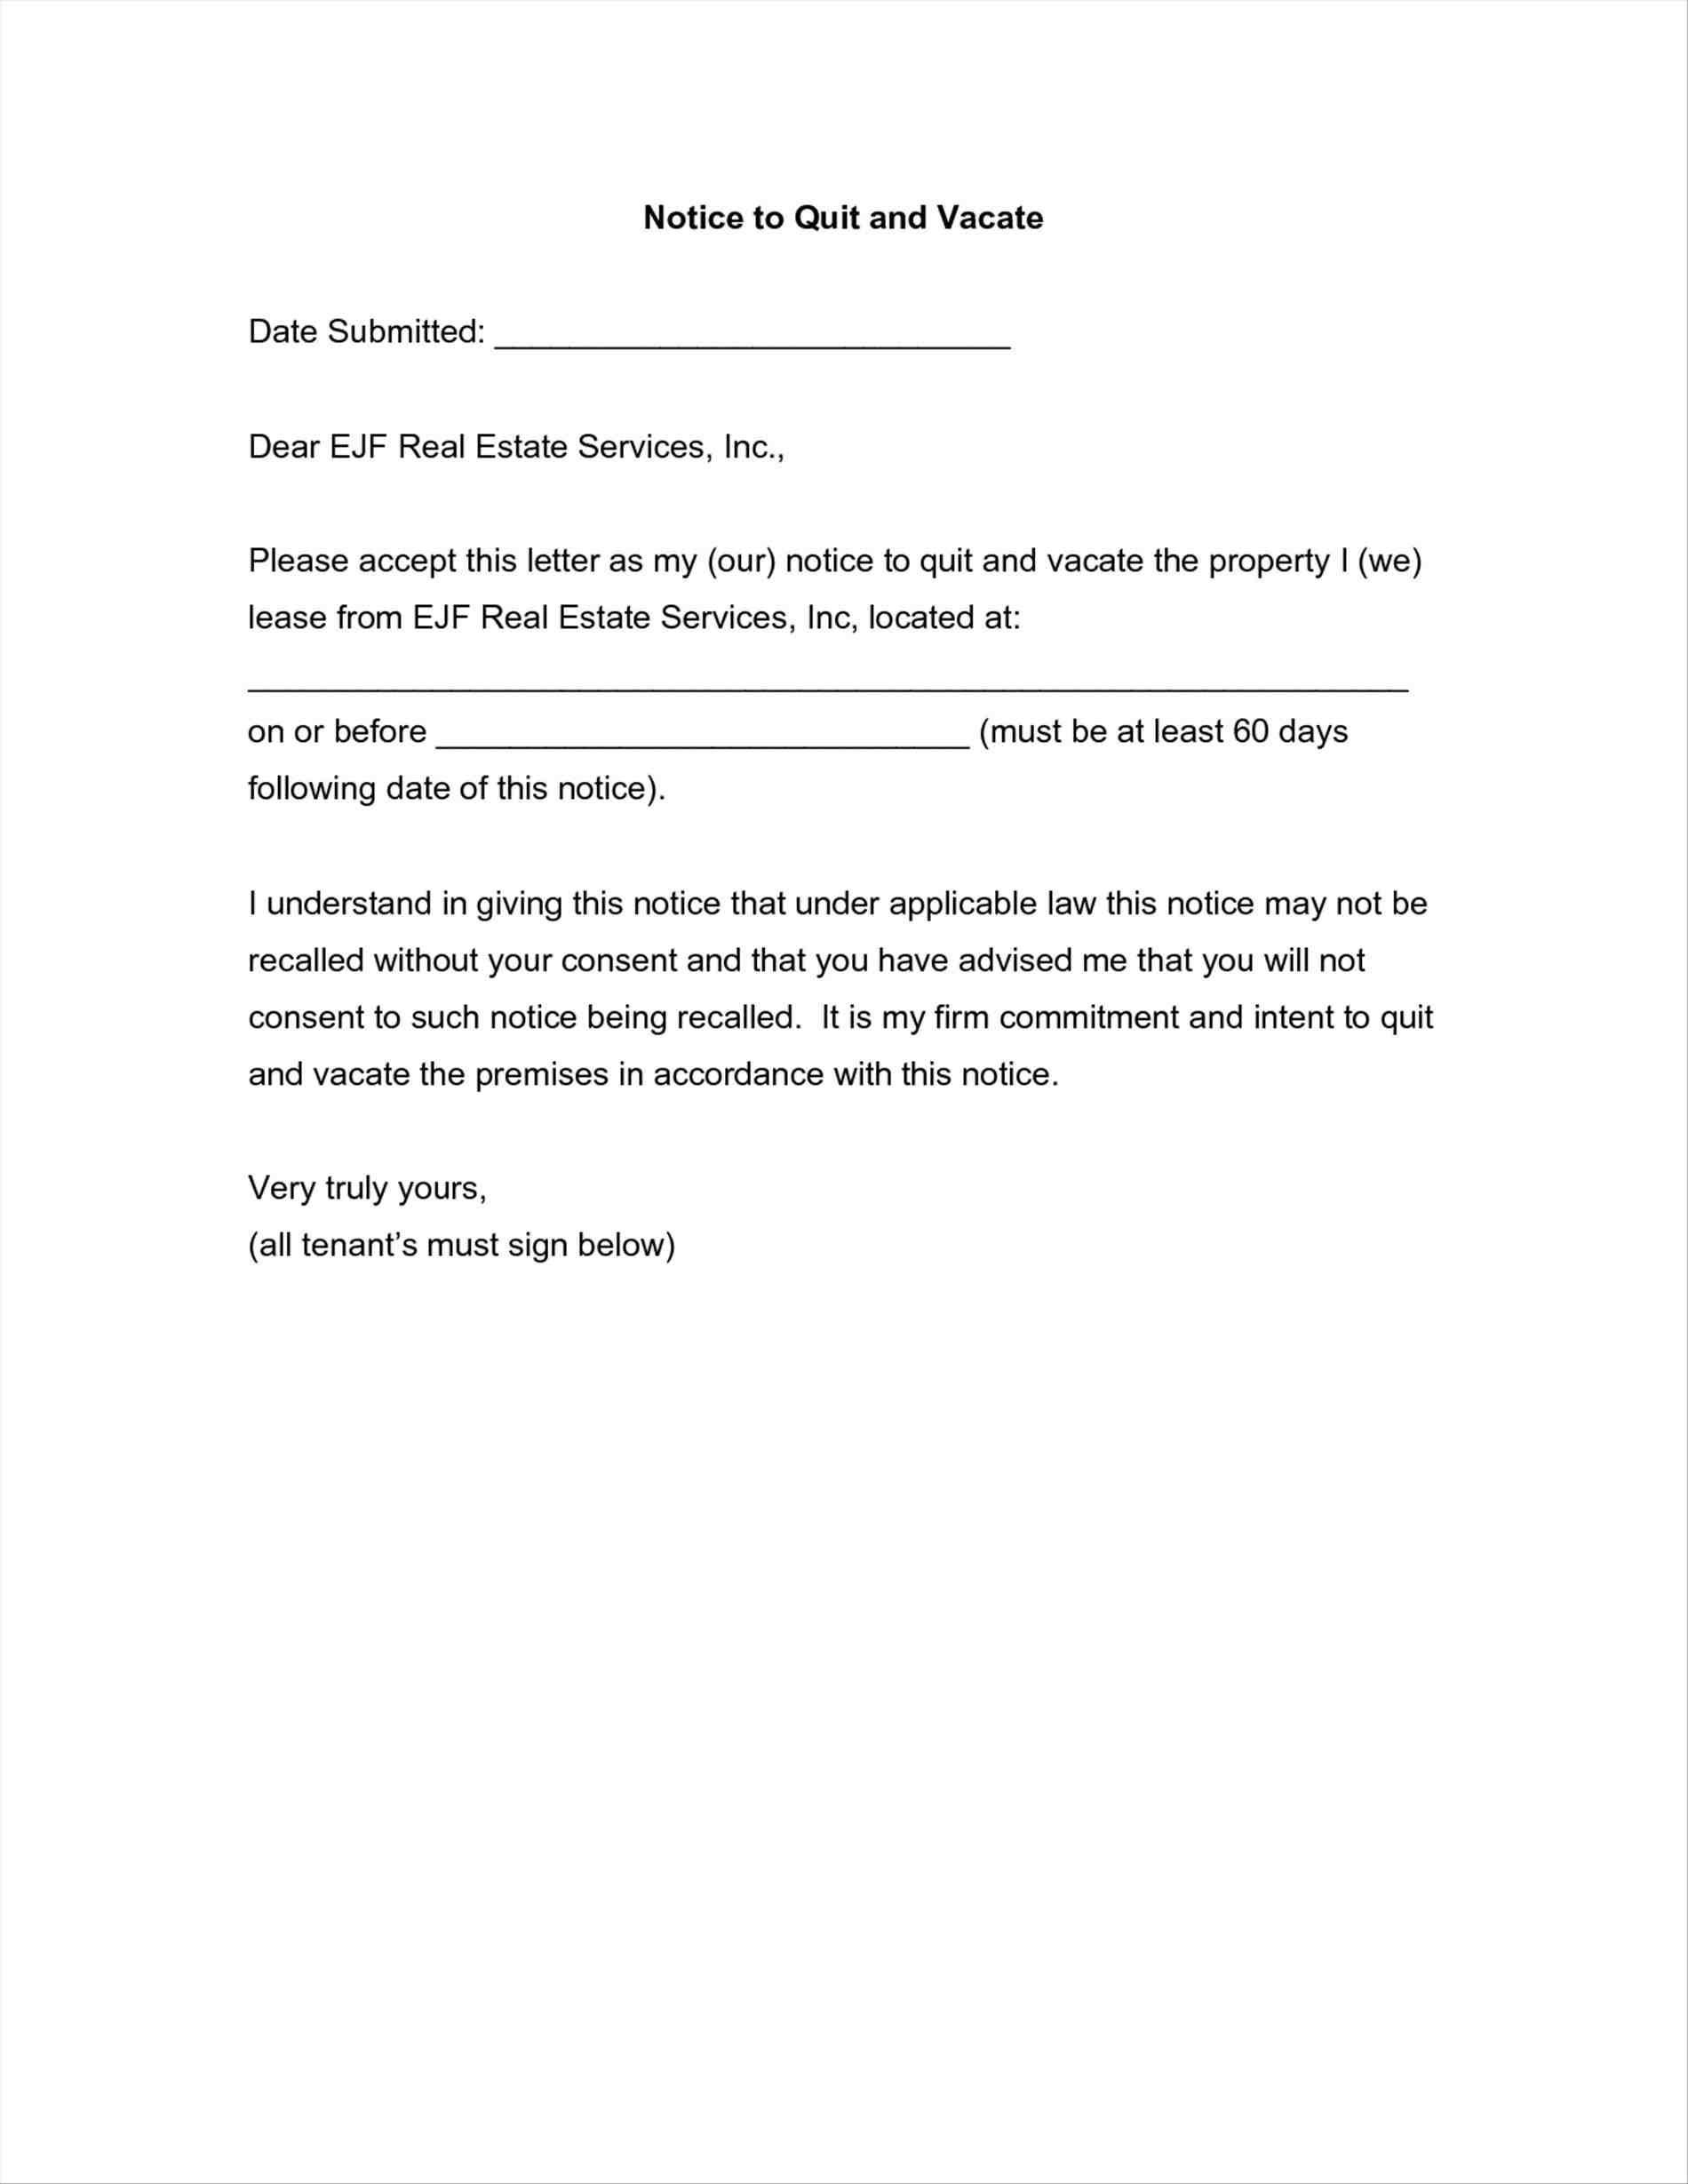 Tenant Warning Letter Template - Template for 60 Day Notice to Vacate